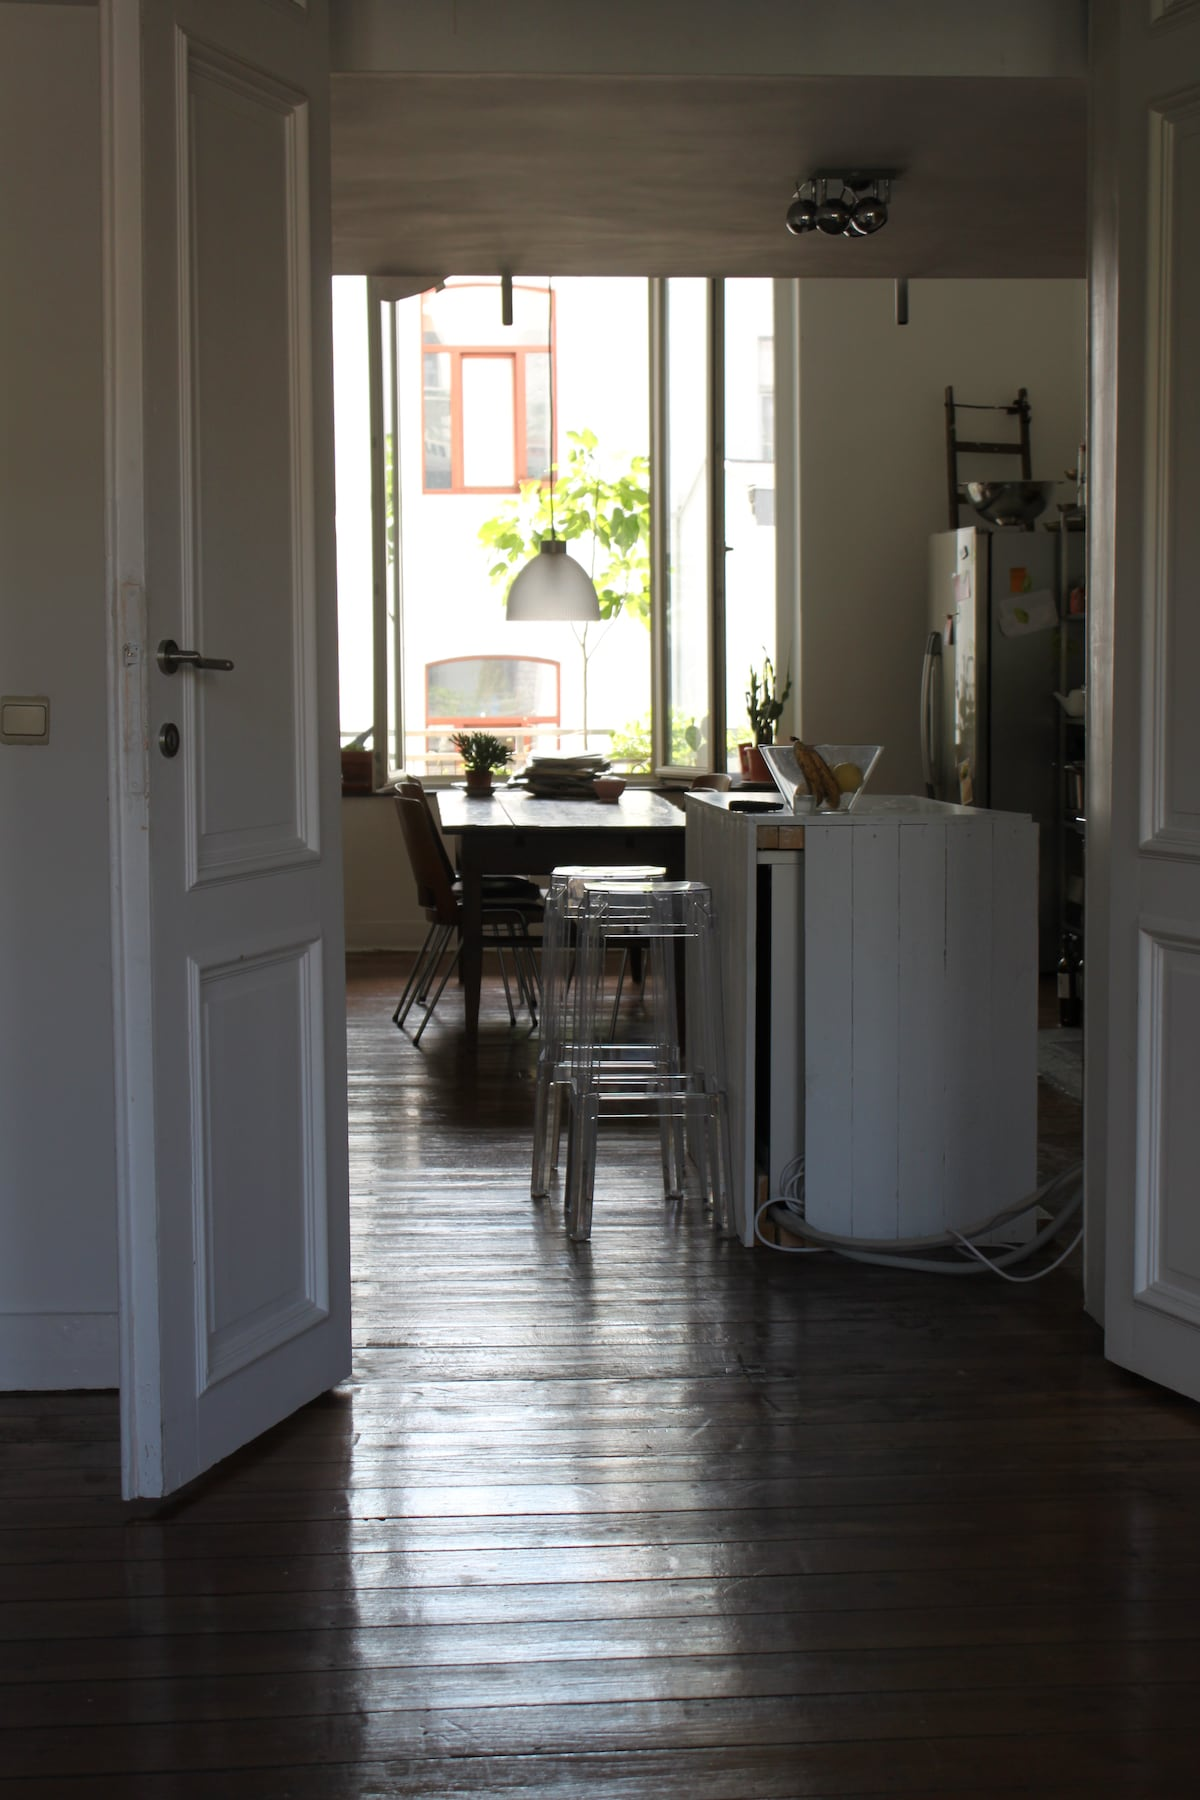 the kitchen and antique dinner table